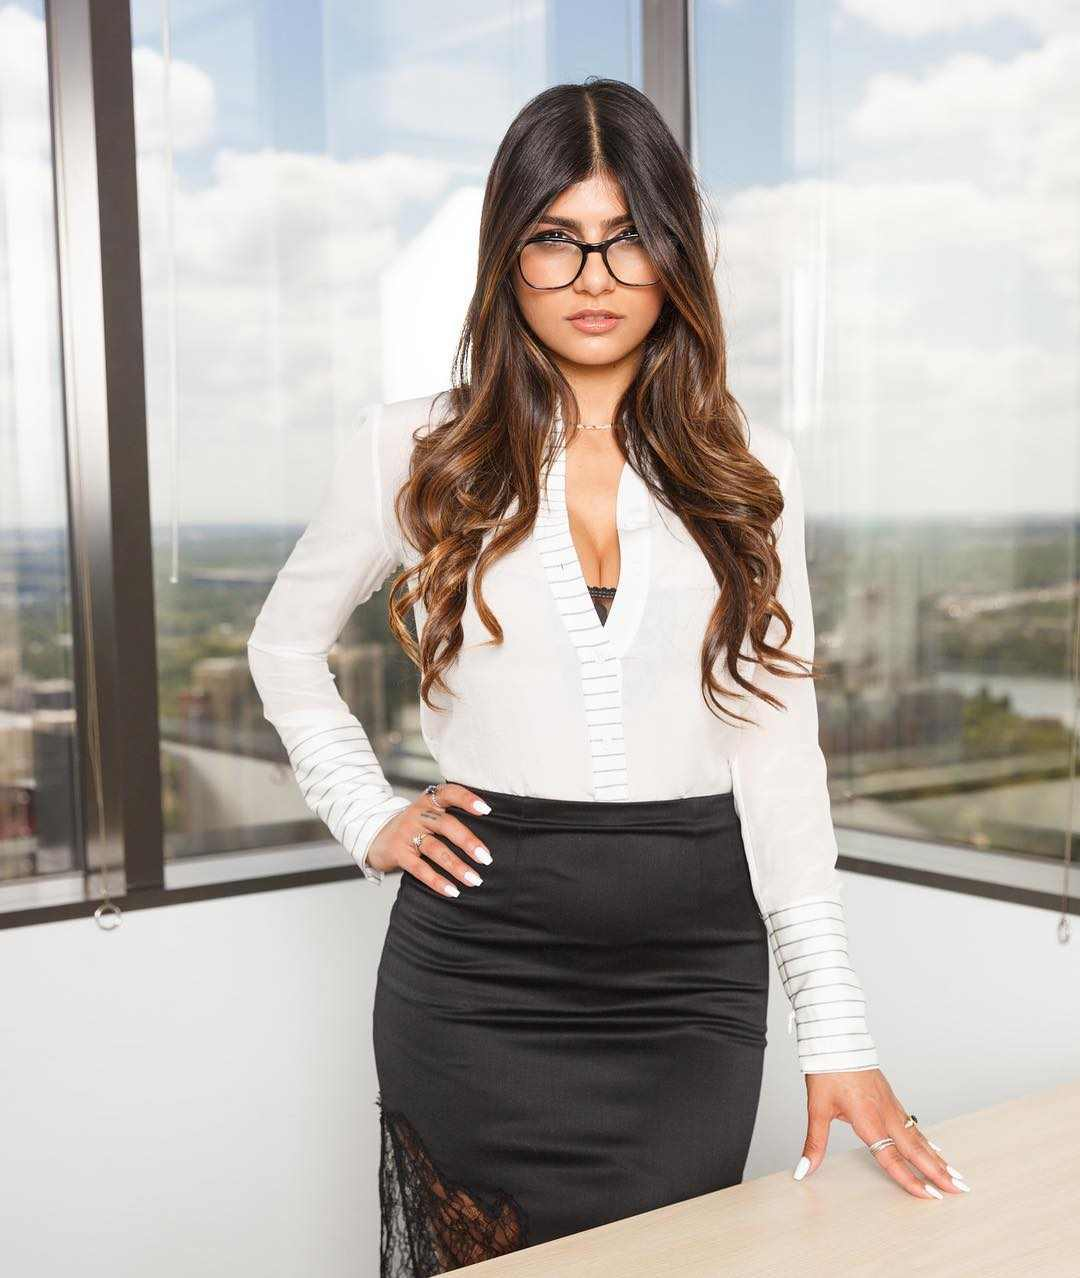 Mia Khalifa Bio, Wiki, Age, Figure, Net Worth, Lifestyle